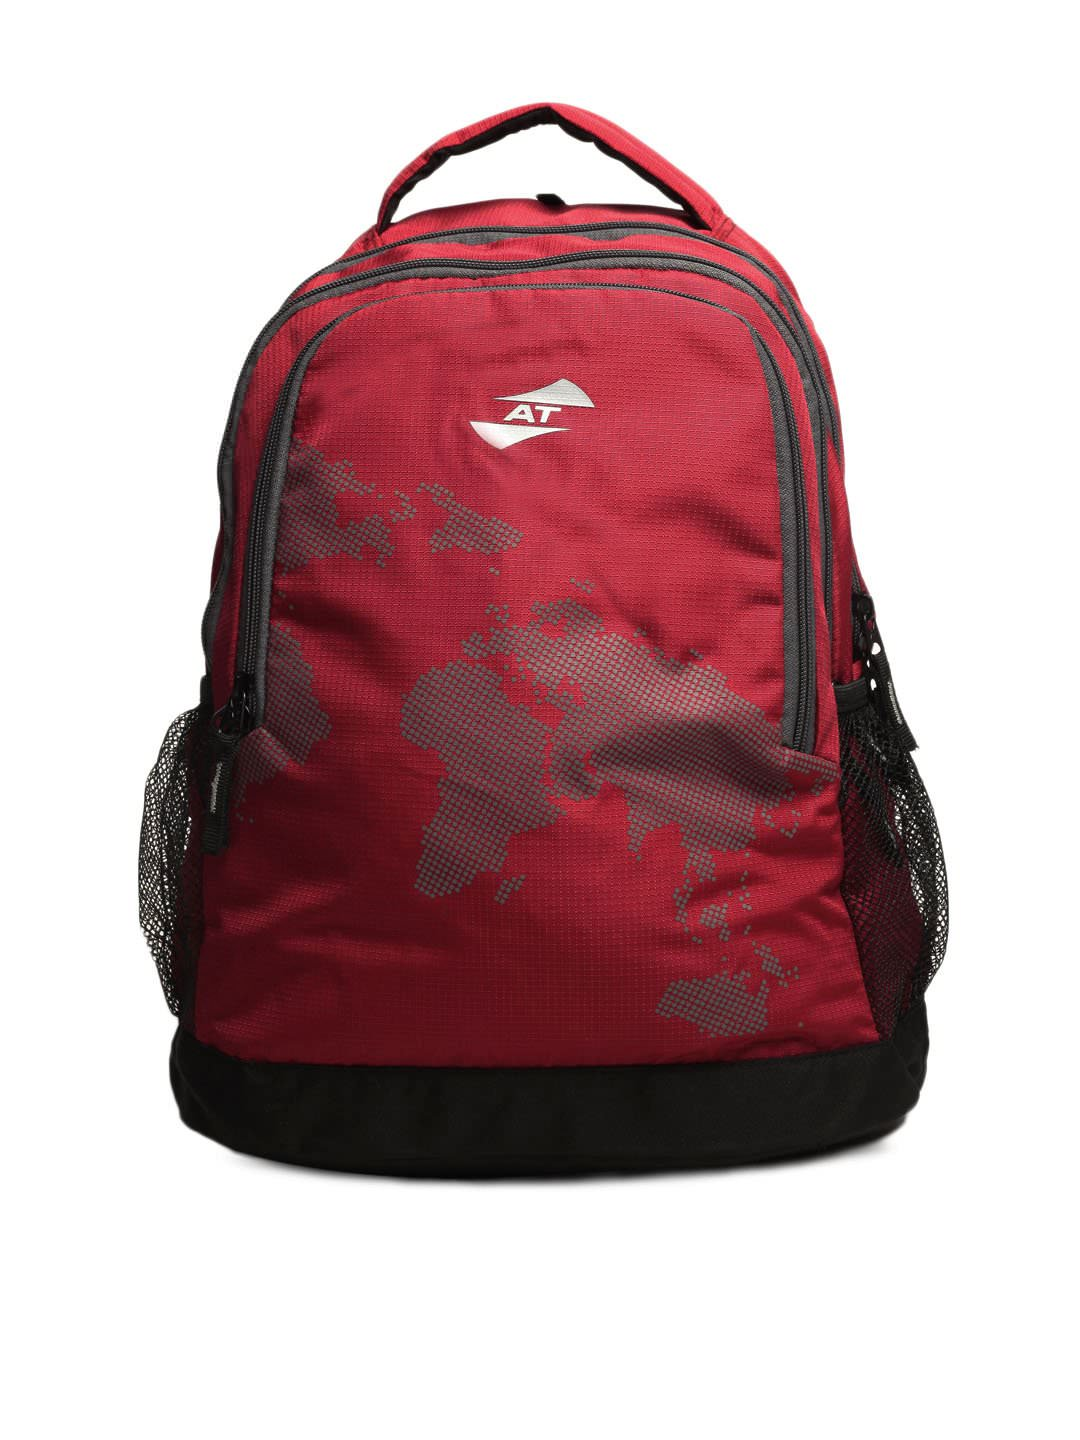 Buy American Tourister Backpack at Rs.1036